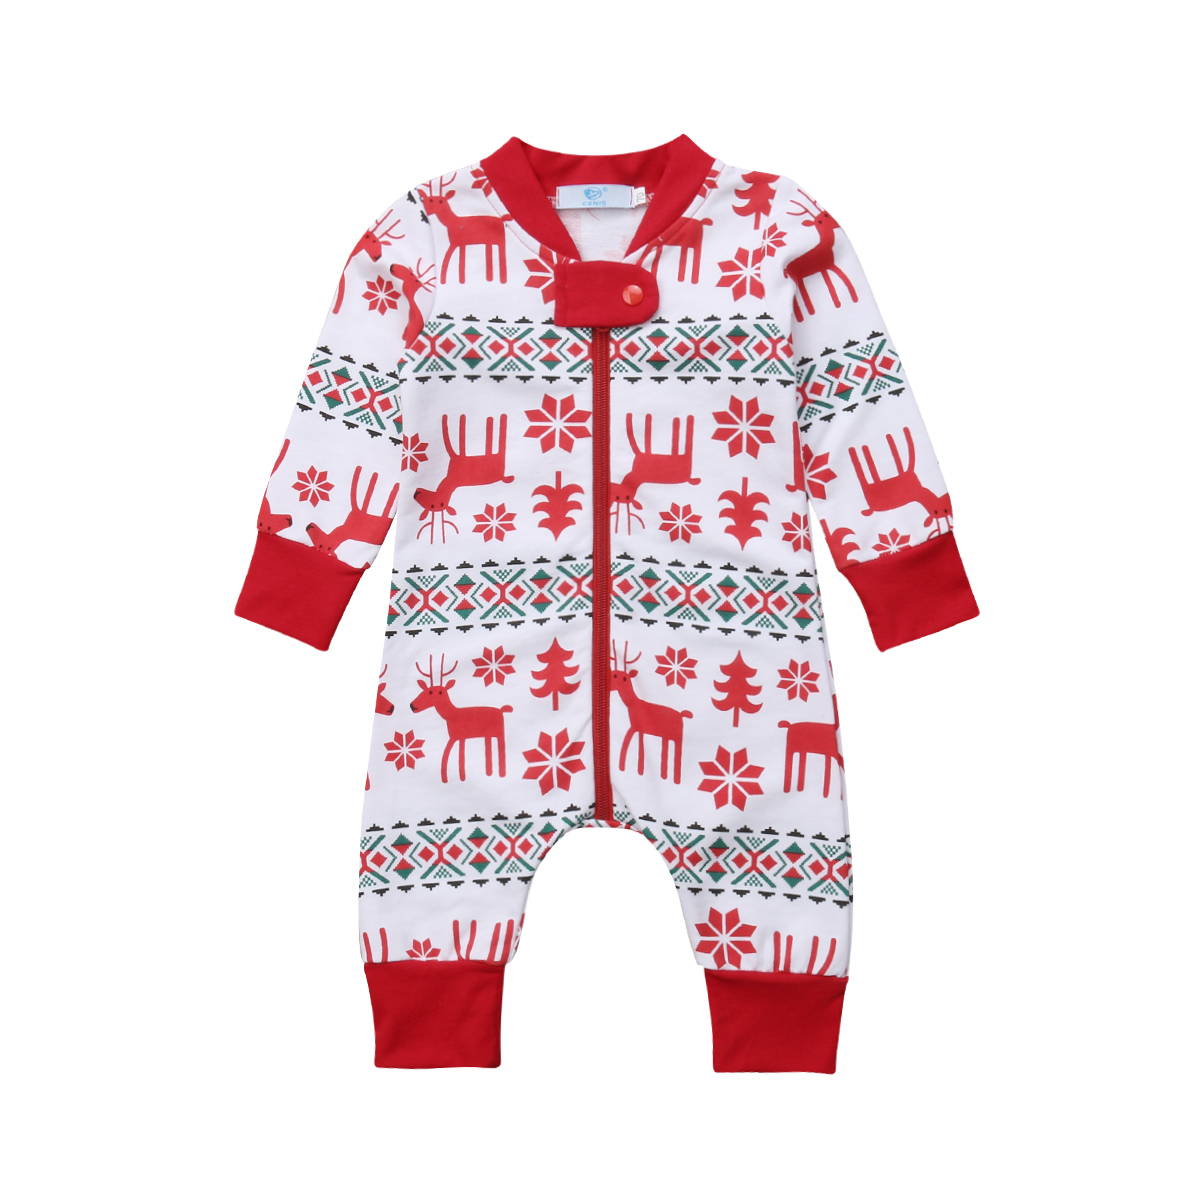 pudcoco Newborn Baby Boys Girls Cotton Xmas Zipper   Romper   Jumpsuit Outfits Set baby girl boy christmas xmas   romper   baby girl boy